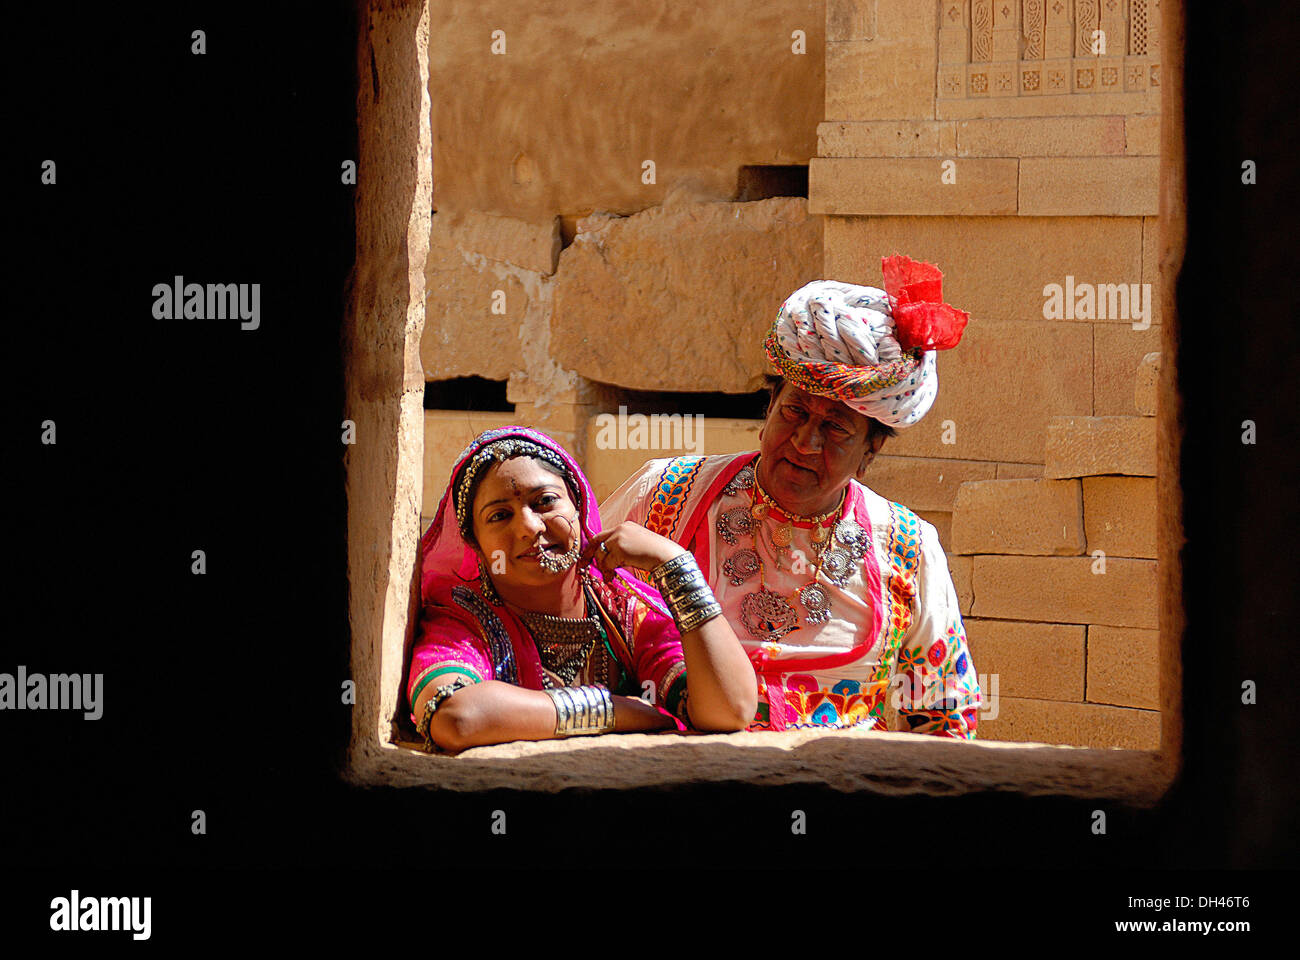 L'homme et de la femme indienne en vêtements traditionnels Jaisalmer Rajasthan Inde Asie M.# 784B Photo Stock